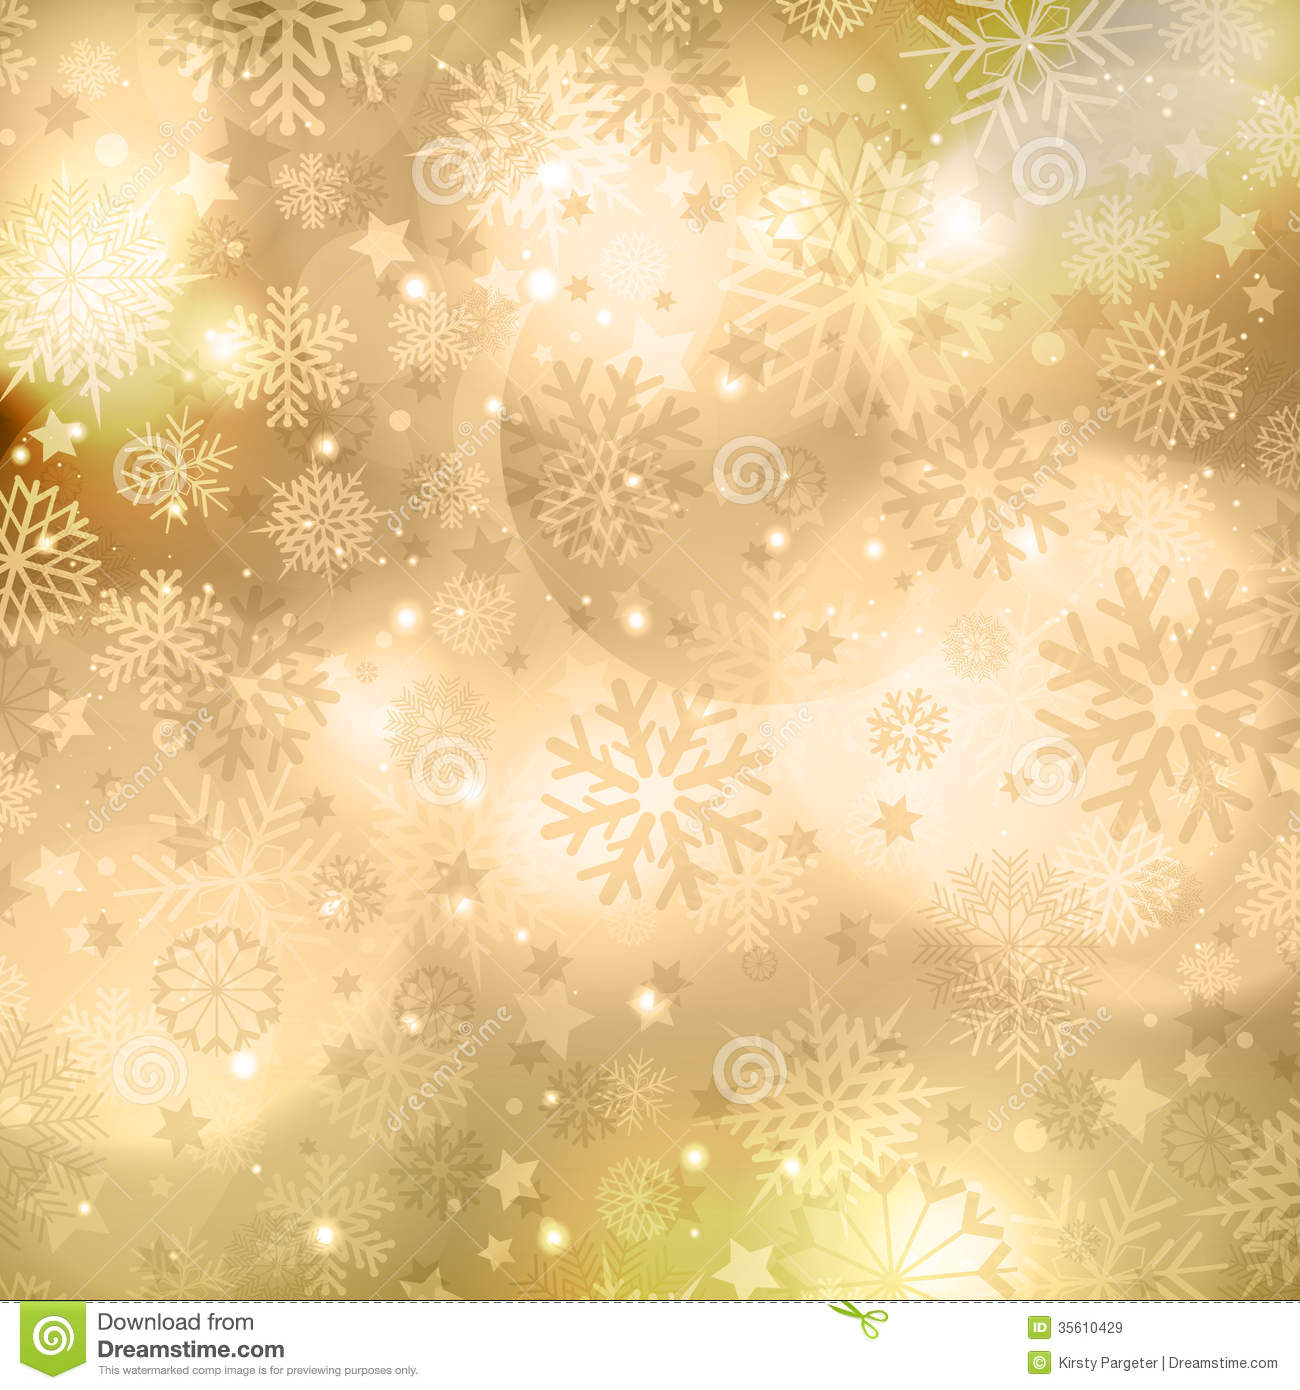 Red and gold christmas decorations wallpaper - Gold Christmas Background Royalty Free Stock Images